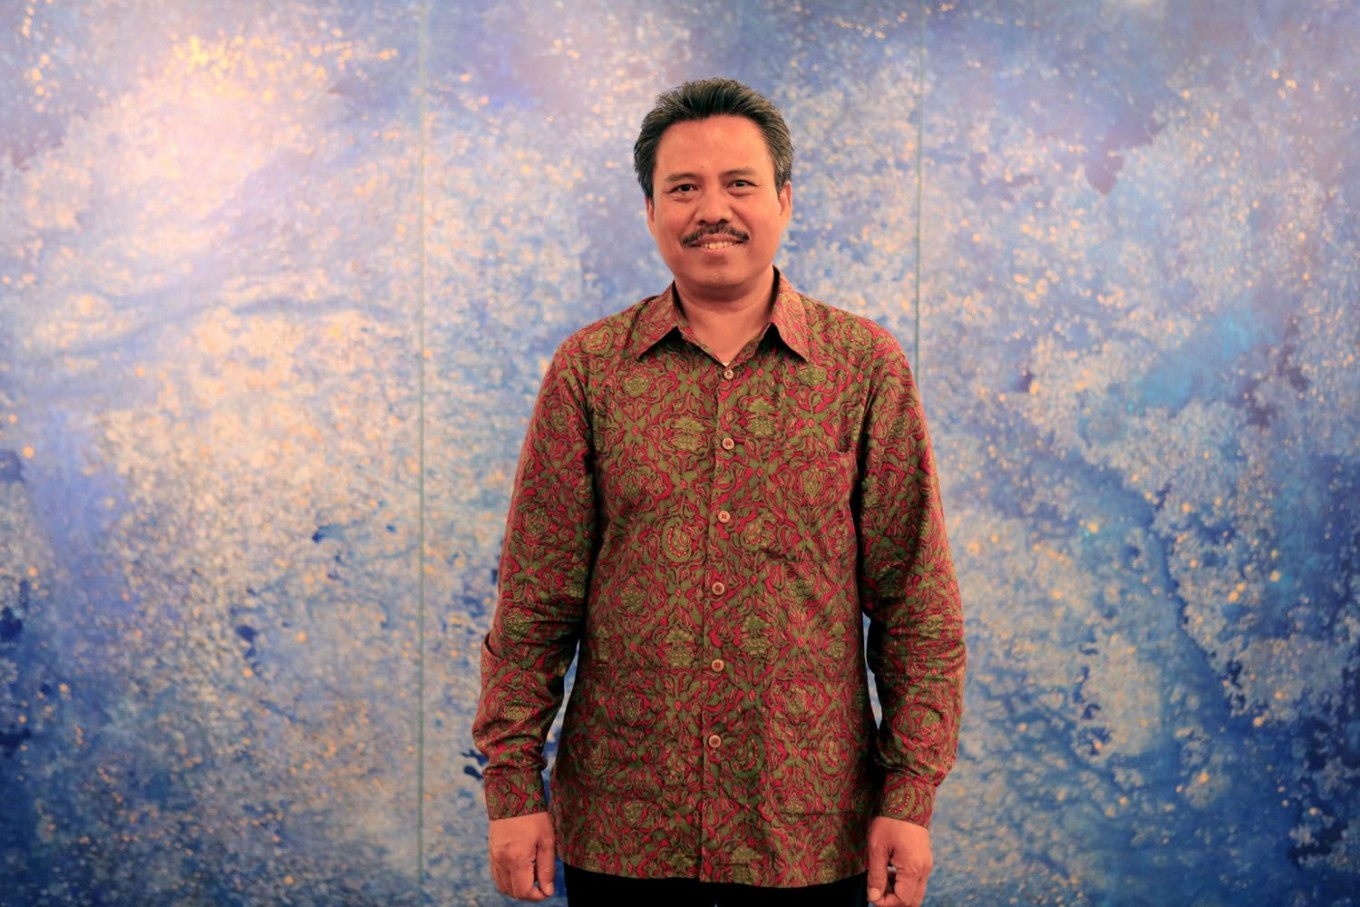 Balinese artist I Wayan Karja's abstracts works are currently on display in an exhibition titled 'Cosmic Energy', held at the Center for Strategic and International Studies (CSIS) in Central Jakarta until Aug. 12.